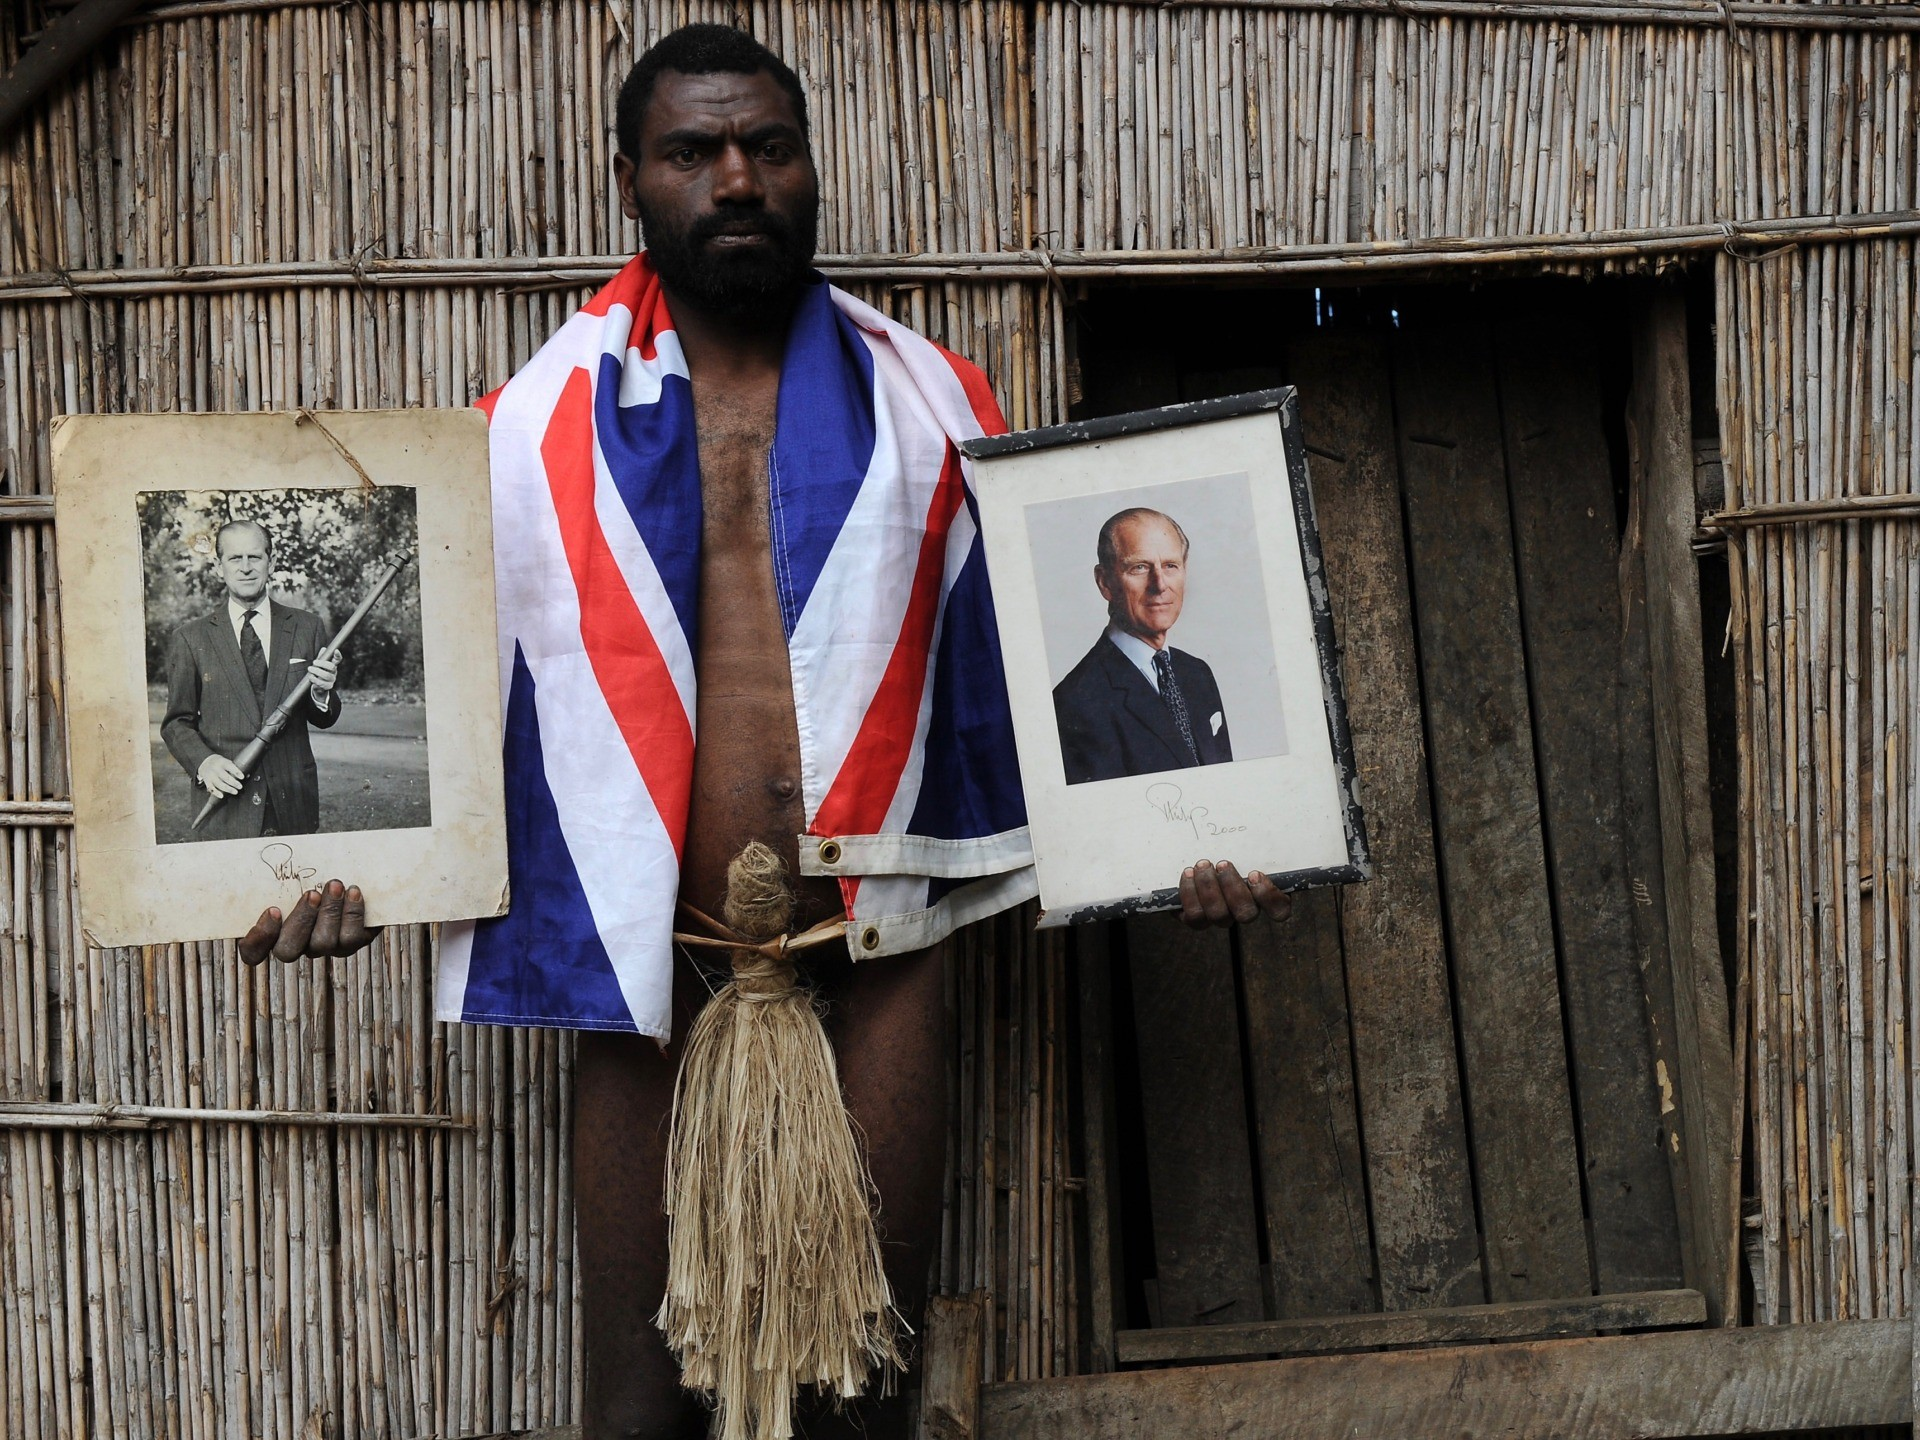 """TO GO WITH AFP STORY """"Vanuatu-Britain-religion-royals,FEATURE"""" by Madeleine Coorey Sikor Natuan, the son of the local chief, holds two official portraits (one holding a pig-killing club, L) of Britain's Prince Philip in front of the chief's hut in the remote village of Yaohnanen on Tanna in Vanuatu on August 6, 2010. In his remote village in Vanuatu, tribesman Sikor Natuan cradles a faded portrait of Britain's Prince Philip against his naked and tattooed chest. Natuan, who just weeks before danced and feasted to mark the royal's 89th birthday, is already preparing for next year's celebrations -- and he is expecting the guest of honour to attend, despite his advanced age. For in the South Pacific village of Yaohnanen on Vanuatu's Tanna island, where men wear nothing but grass penis sheaths, and marijuana and tobacco grow wild, Prince Philip is worshipped as a god. AFP PHOTO / Torsten BLACKWOOD (Photo credit should read TORSTEN BLACKWOOD/AFP via Getty Images)"""